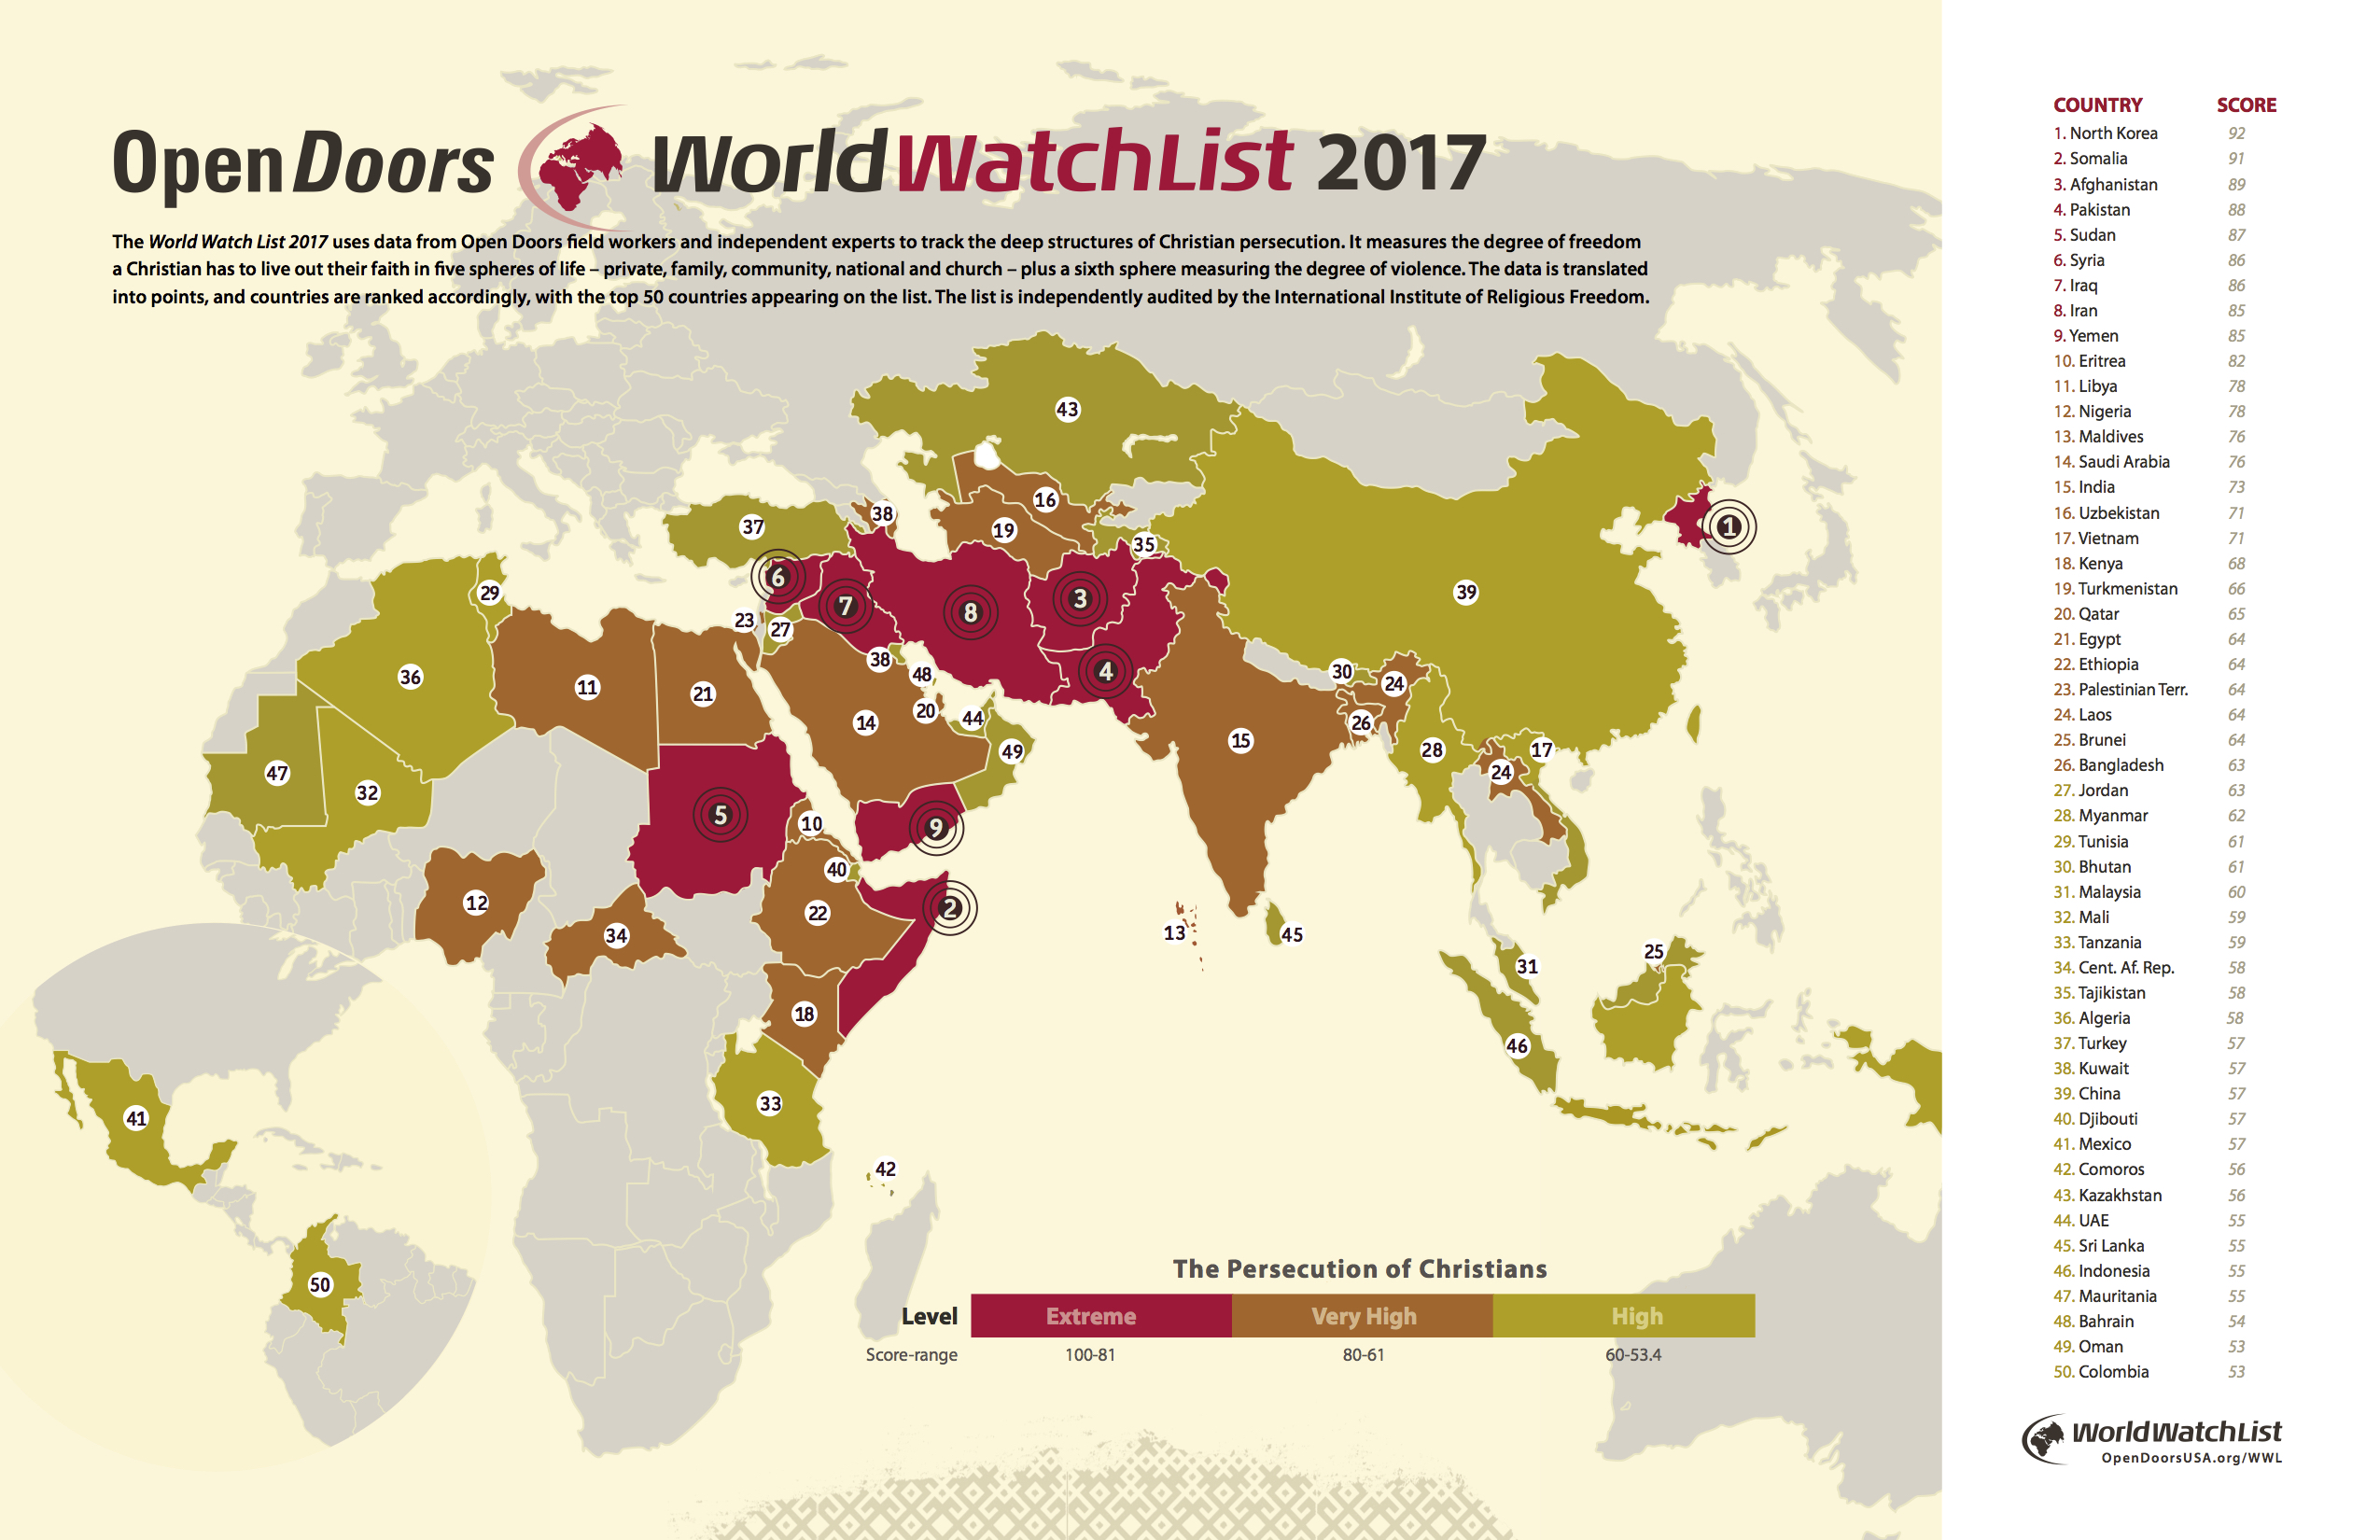 u0027Worst Year Yetu0027 The Top 50 Countries Where Itu0027s Hardest ...... | News u0026 Reporting | Christianity Today  sc 1 st  Christianity Today & Worst Year Yetu0027: The Top 50 Countries Where Itu0027s Hardest ...